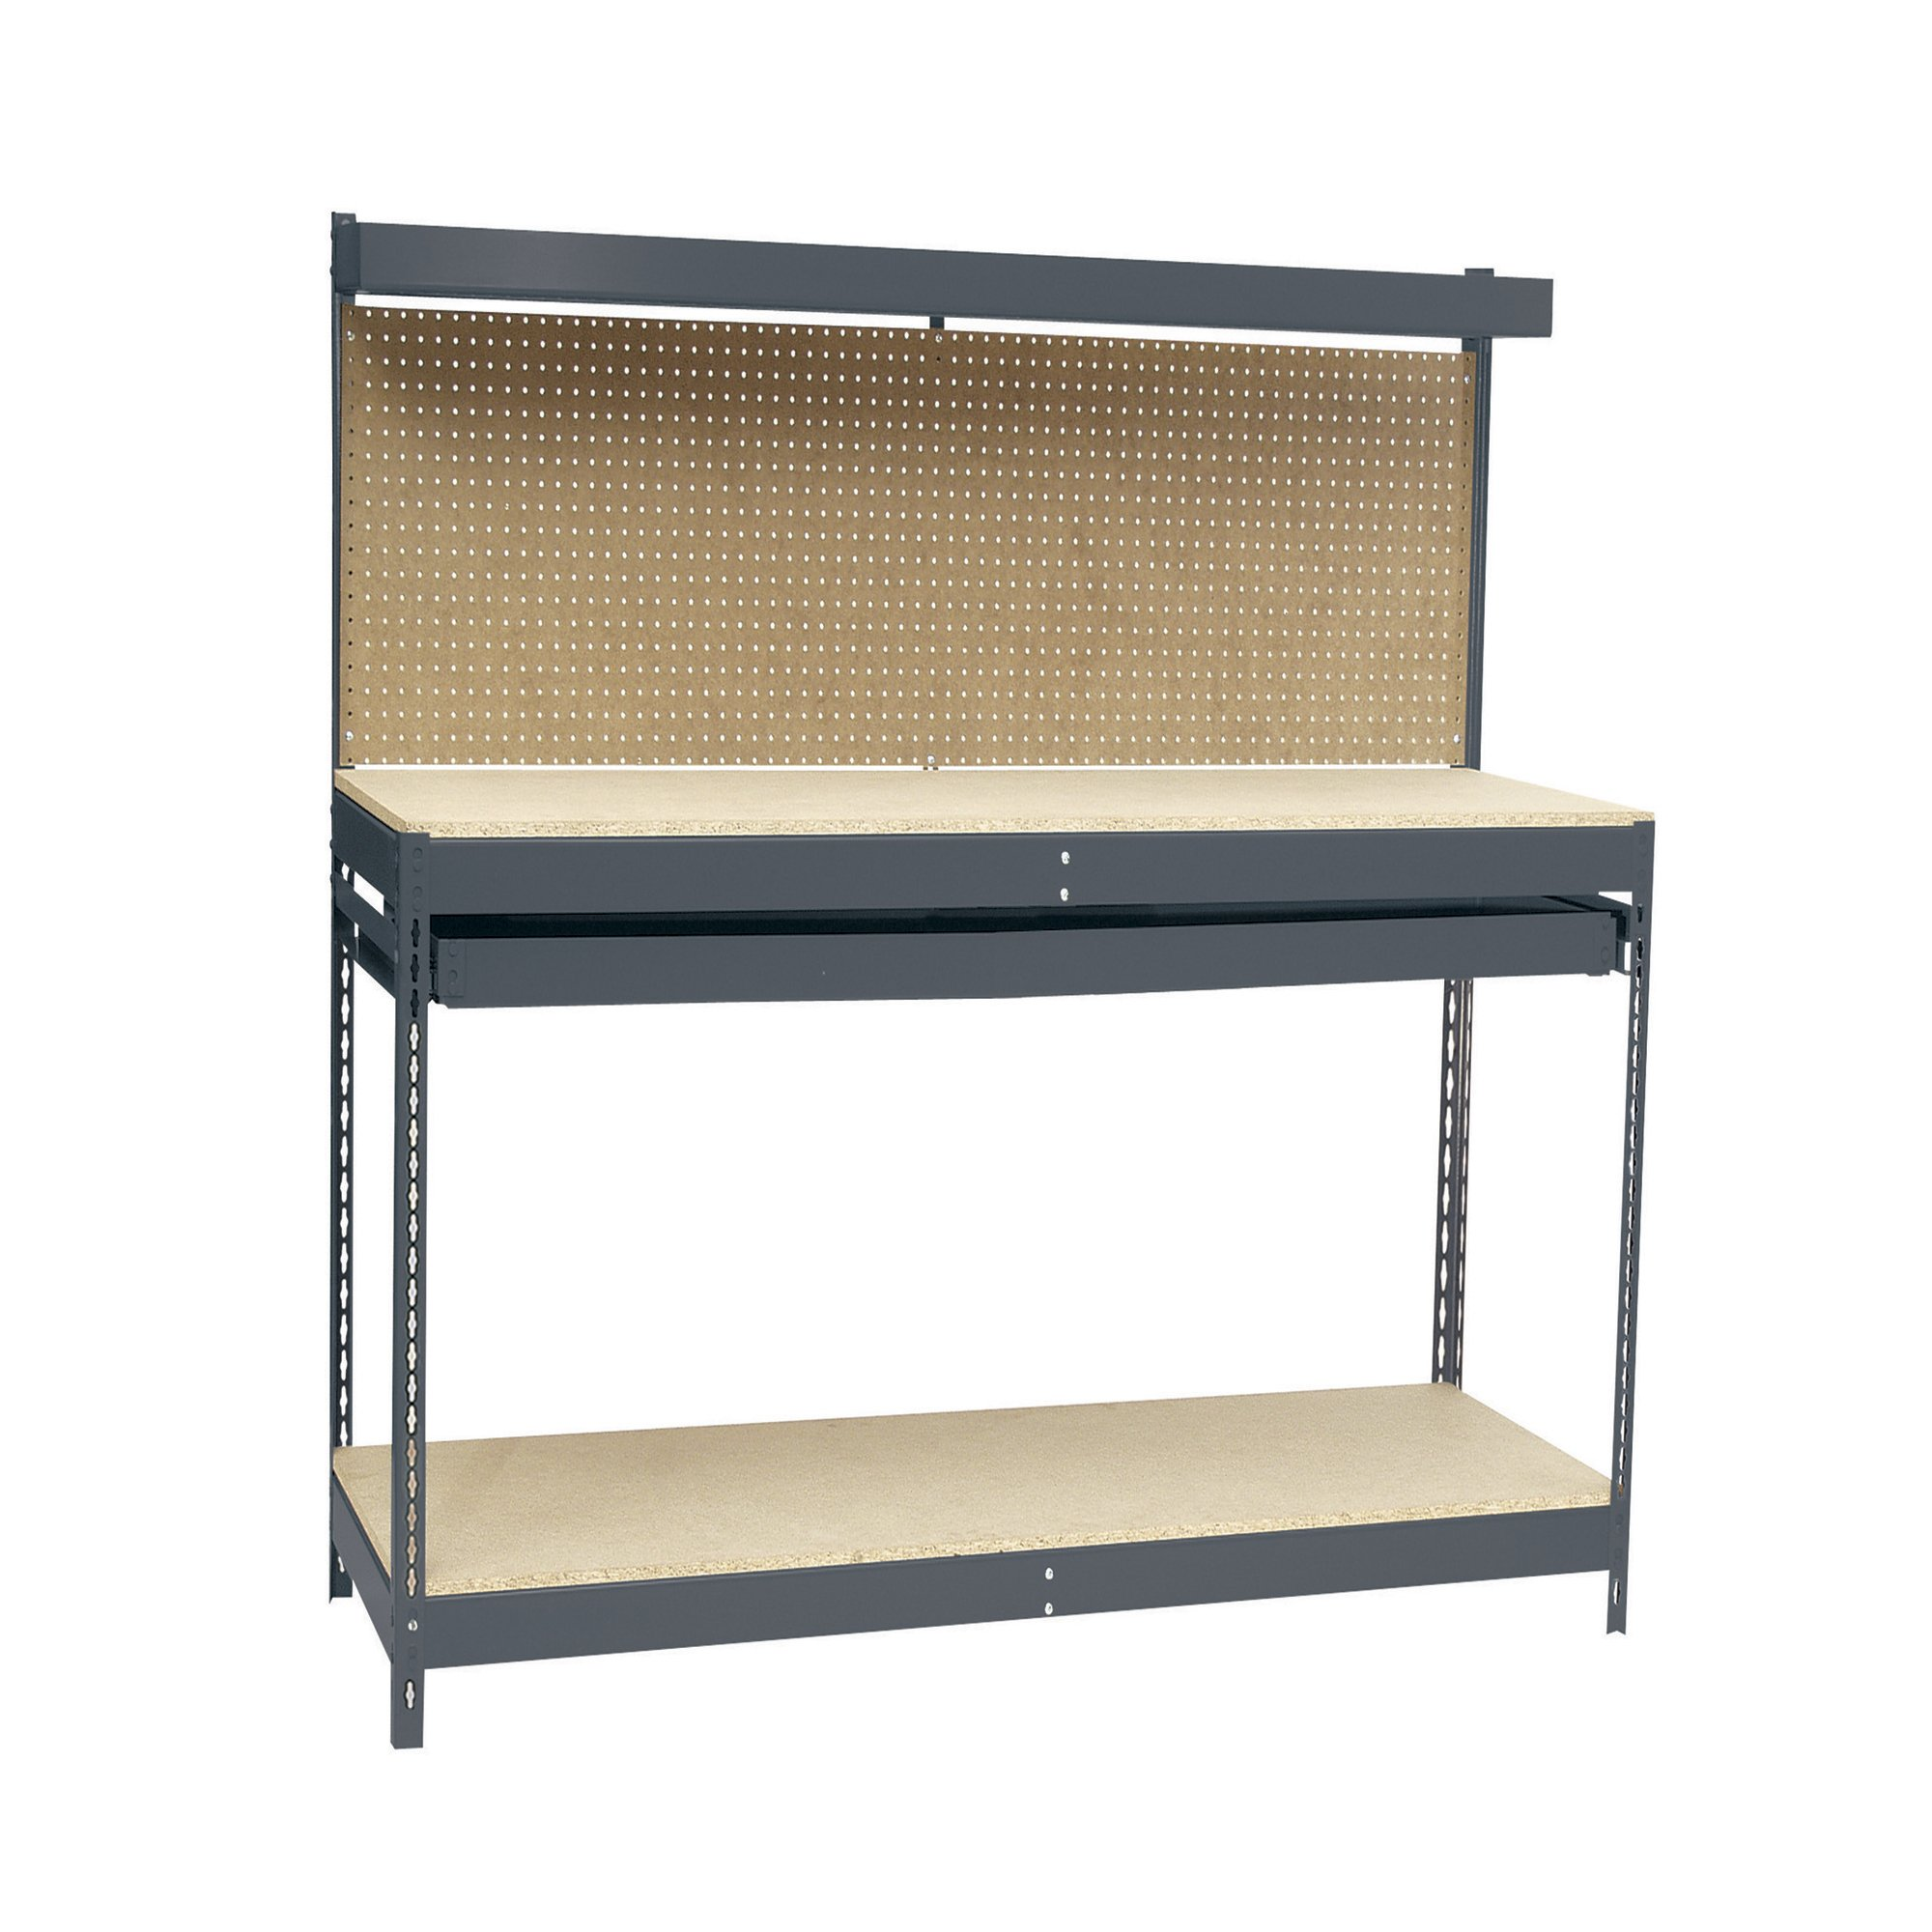 Edsal MRWB-4 Gray Heavy Duty Steel Workbench with Single Drawer, 48'' Width x 60'' Height x 24'' Depth